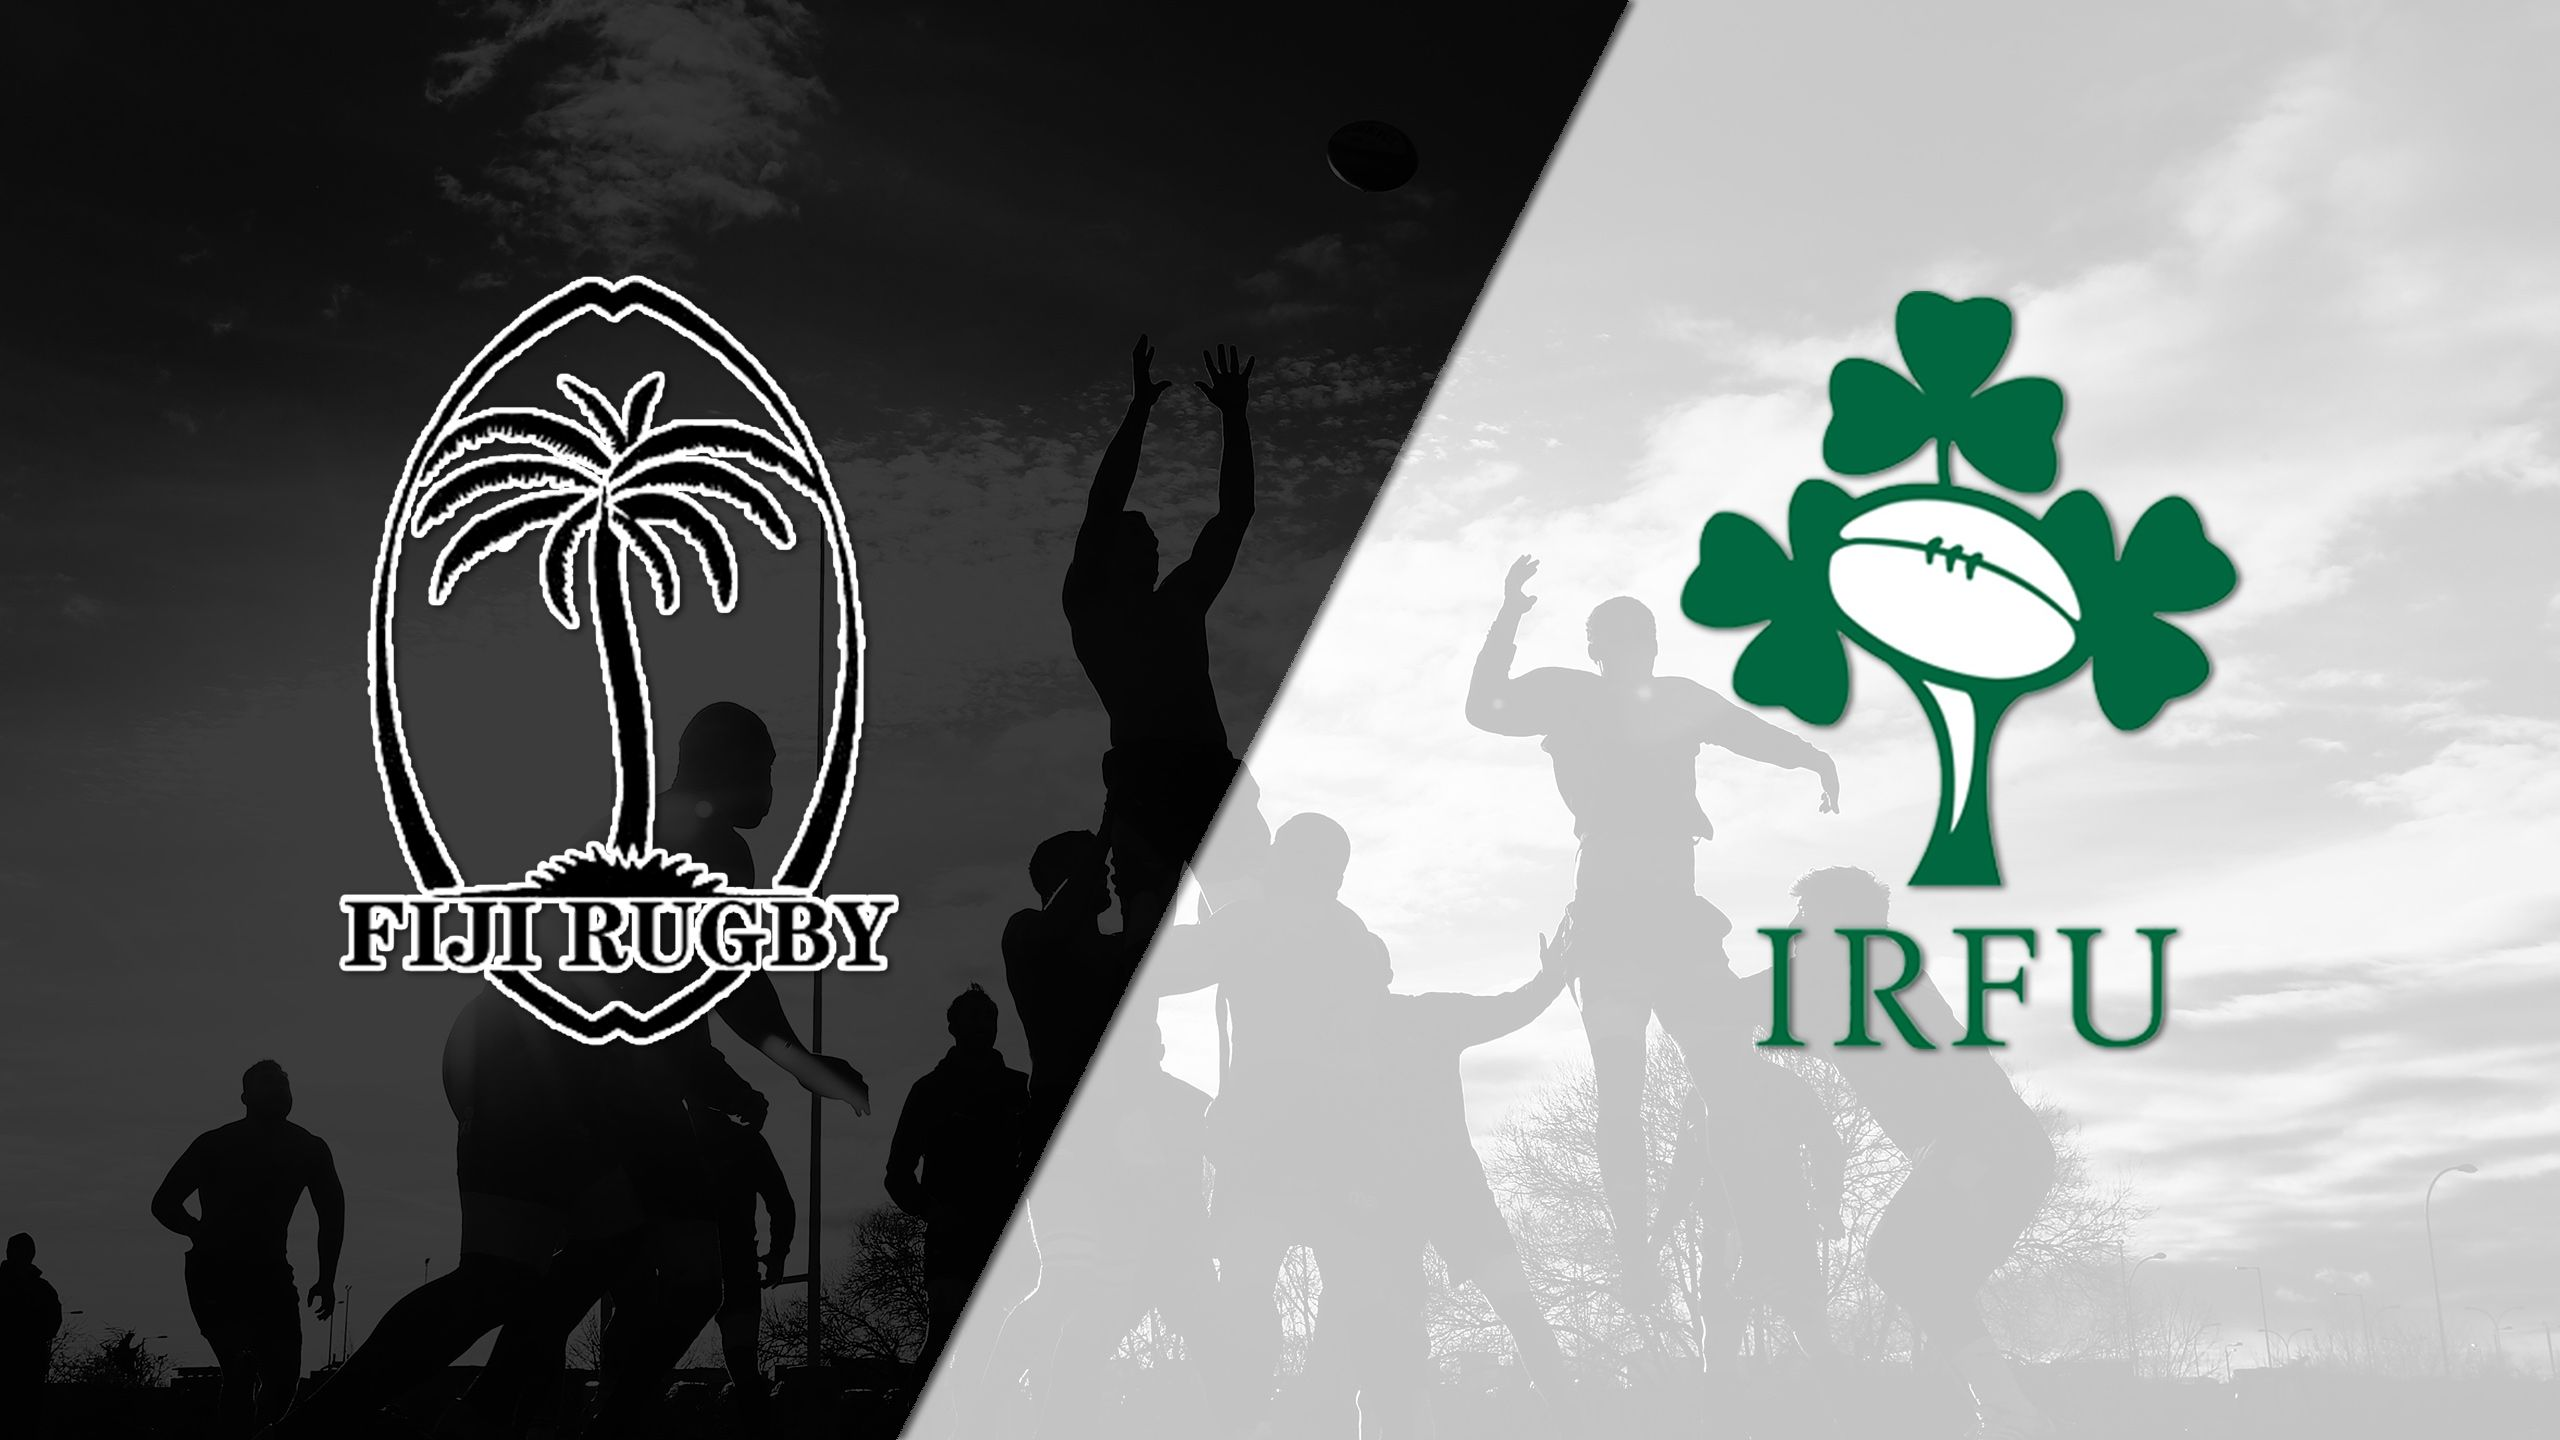 Fiji vs. Ireland (International Rugby)